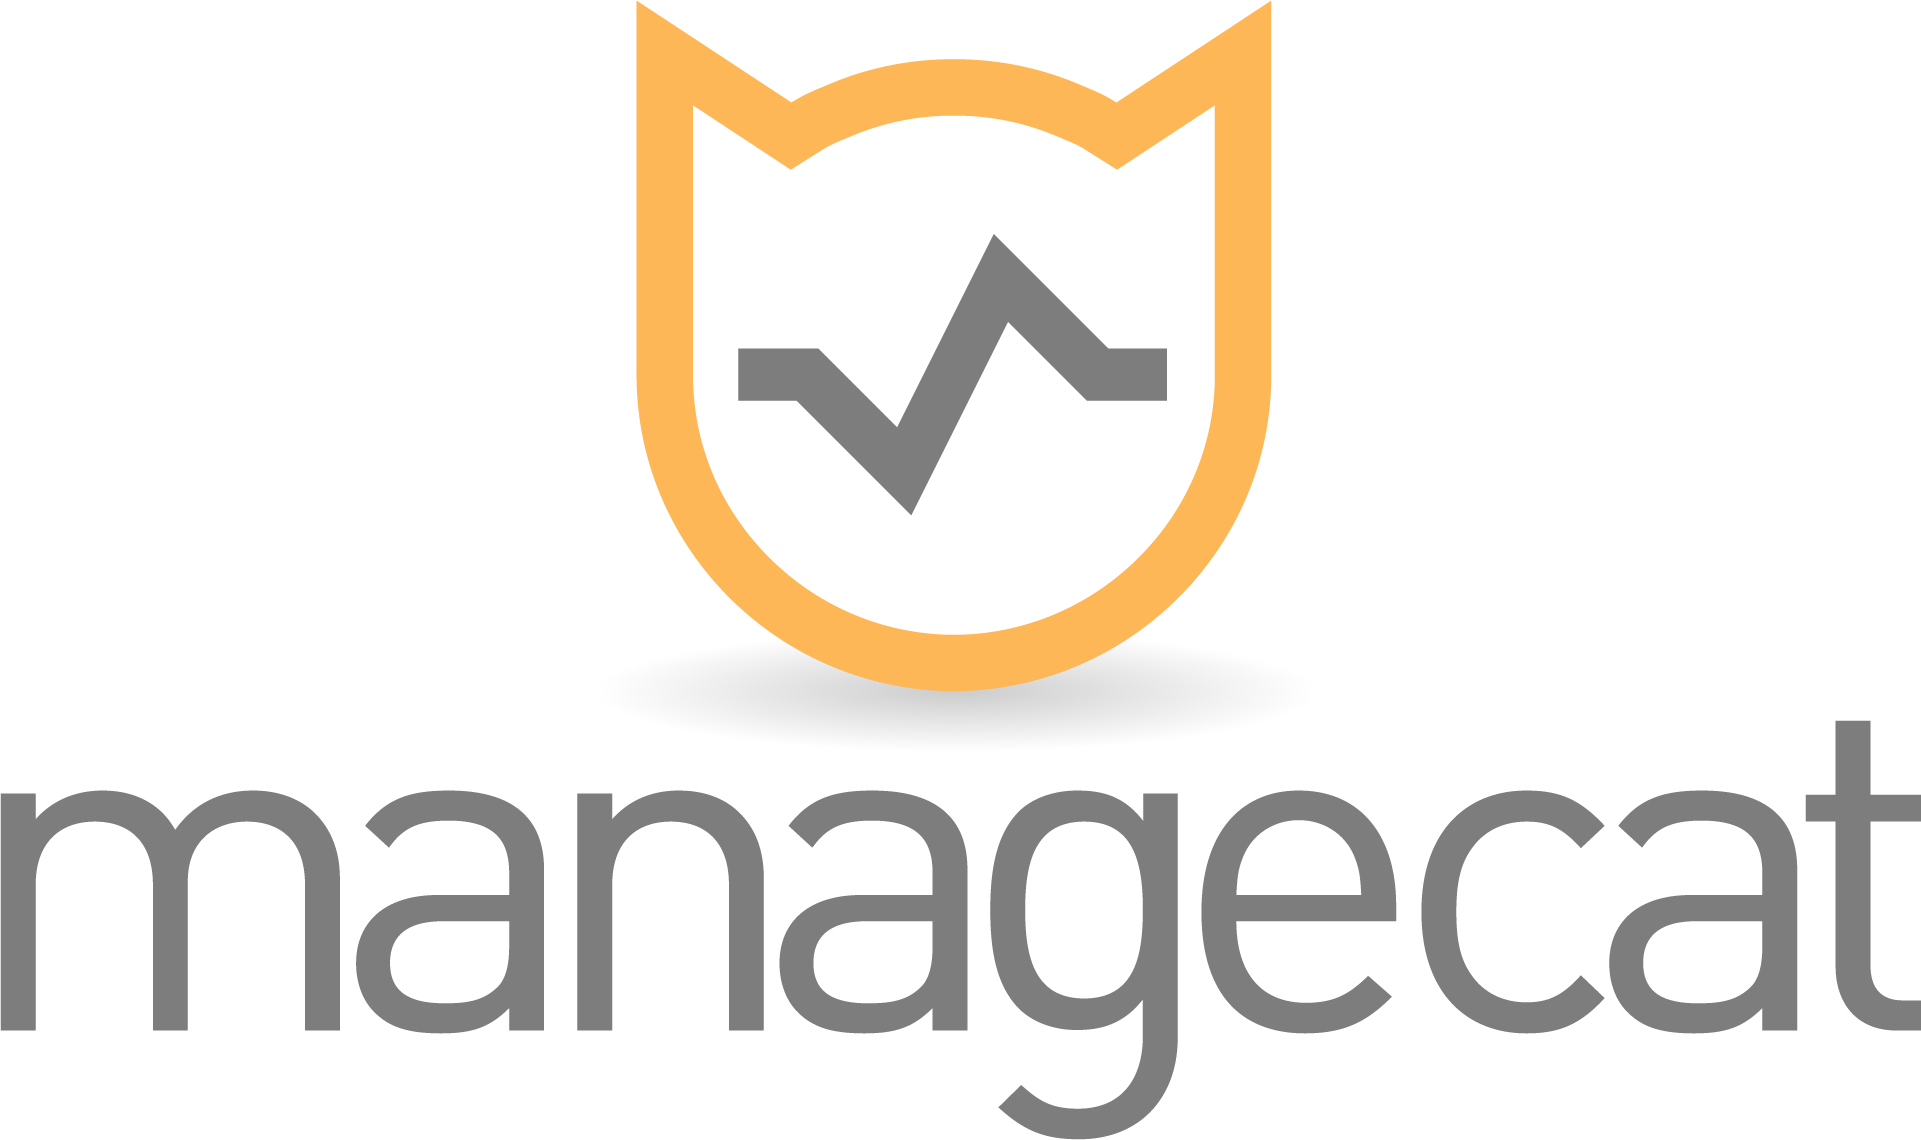 logo_managecatyellow_tall-white.png